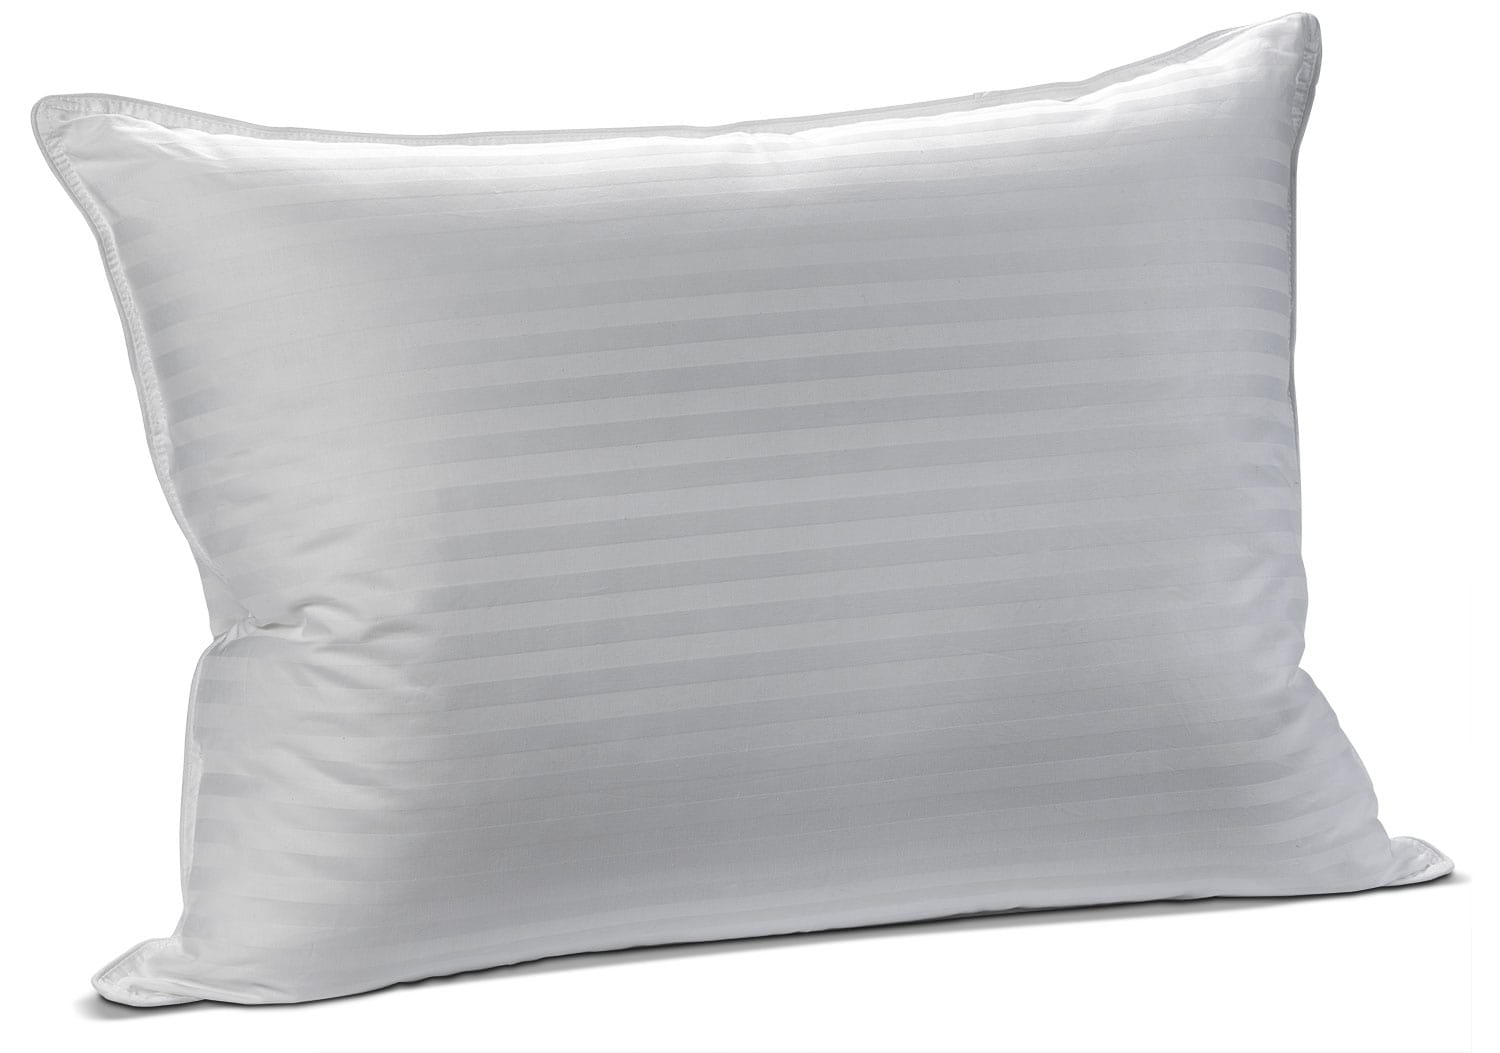 Mattresses and Bedding - Ergo Hotel Standard Pillow